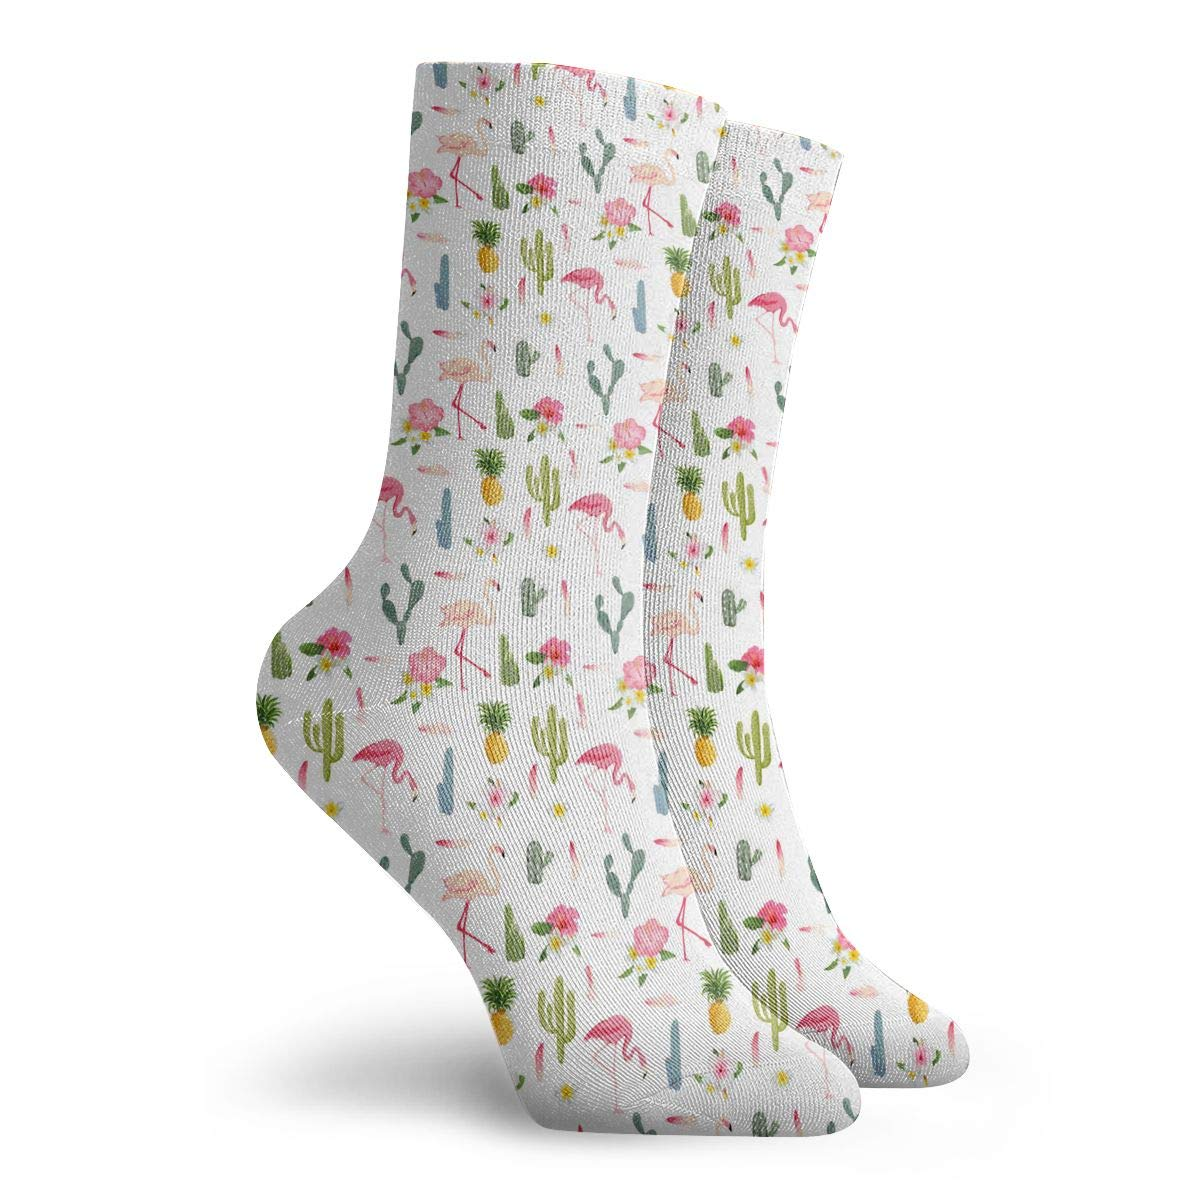 Unisex Tropical Flamingo Bird Cactus Athletic Quarter Ankle Print Breathable Hiking Running Socks